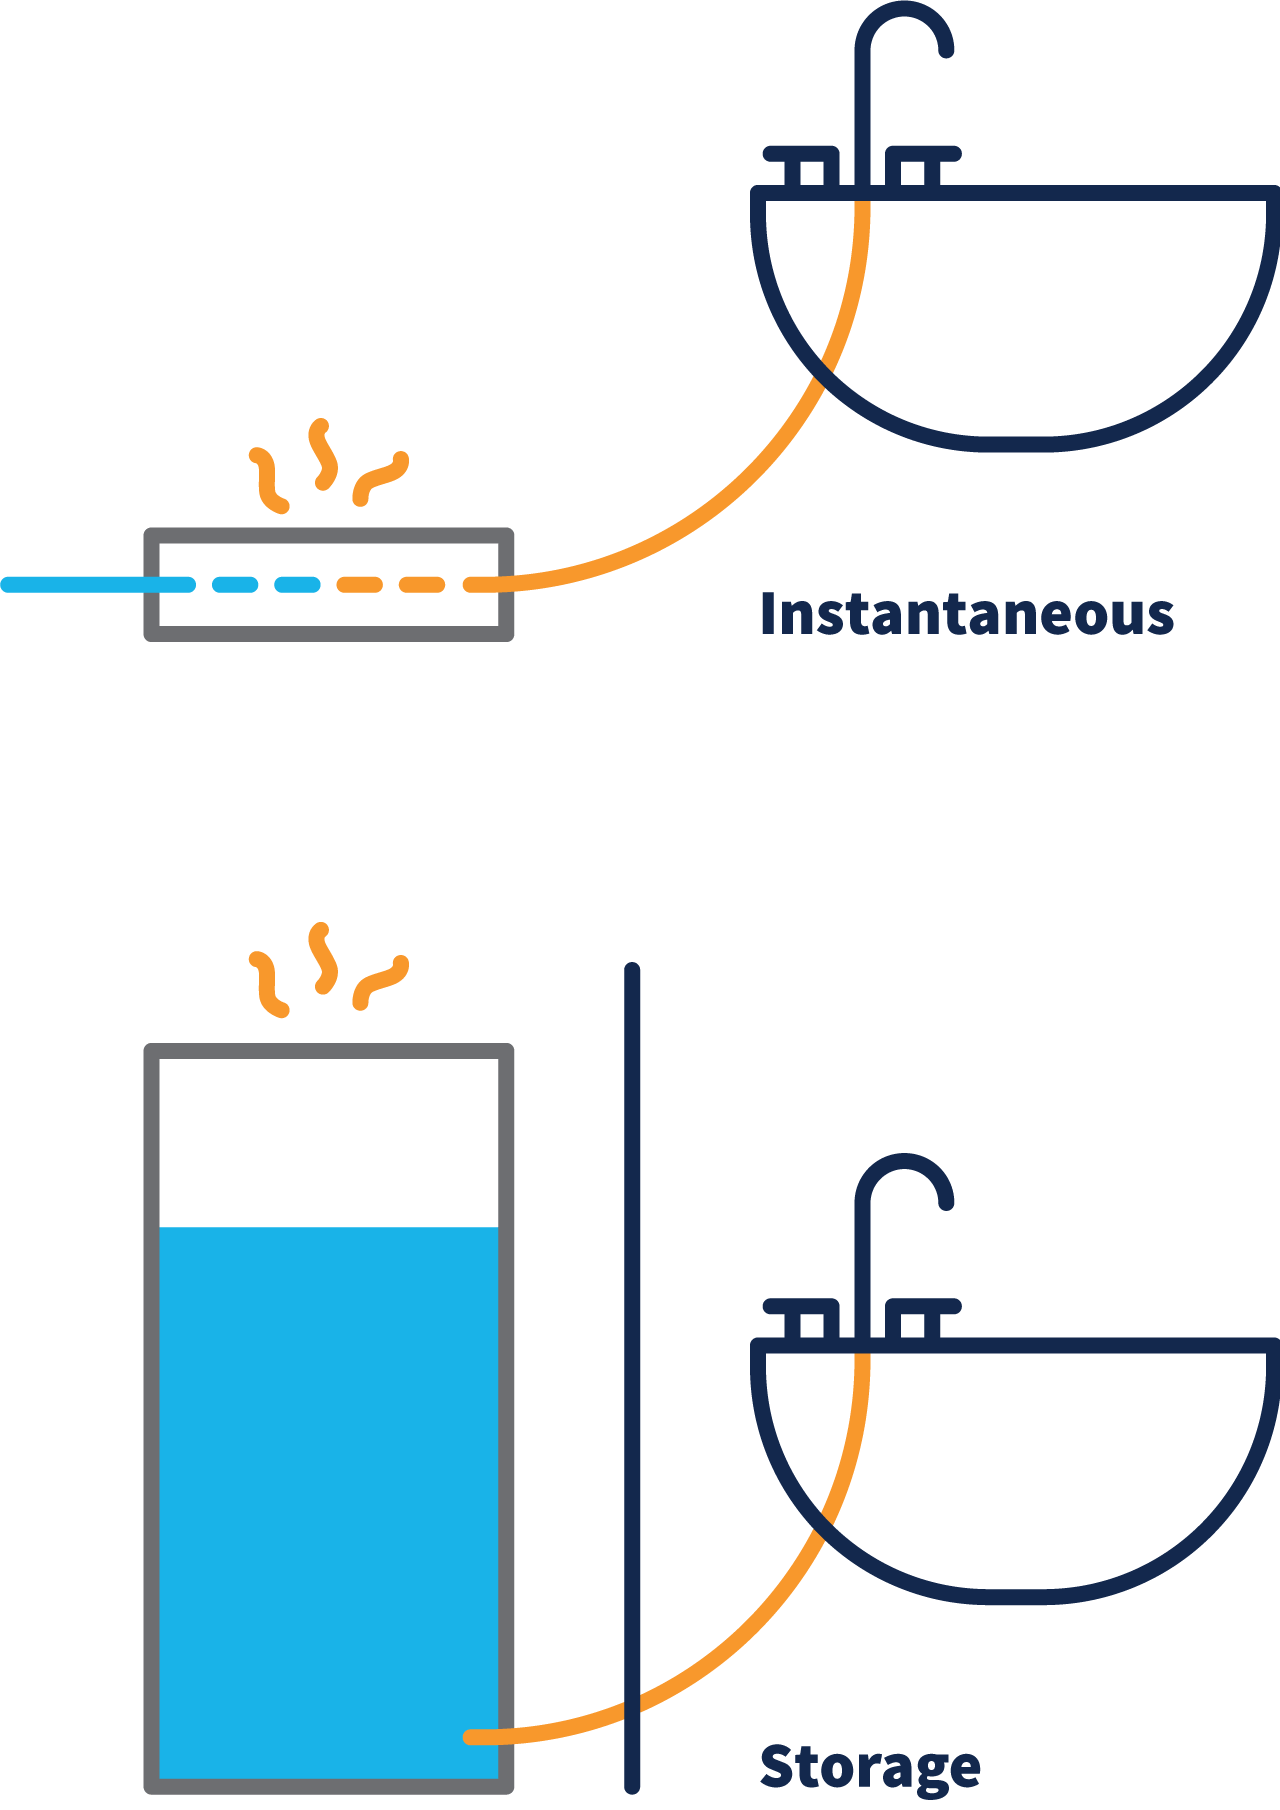 A diagram of water being heated instantaneously within the pipe as it travels to the tap and basin. Below a storage tank is depicted heating the water and storing while waiting for the tap to be turned on.